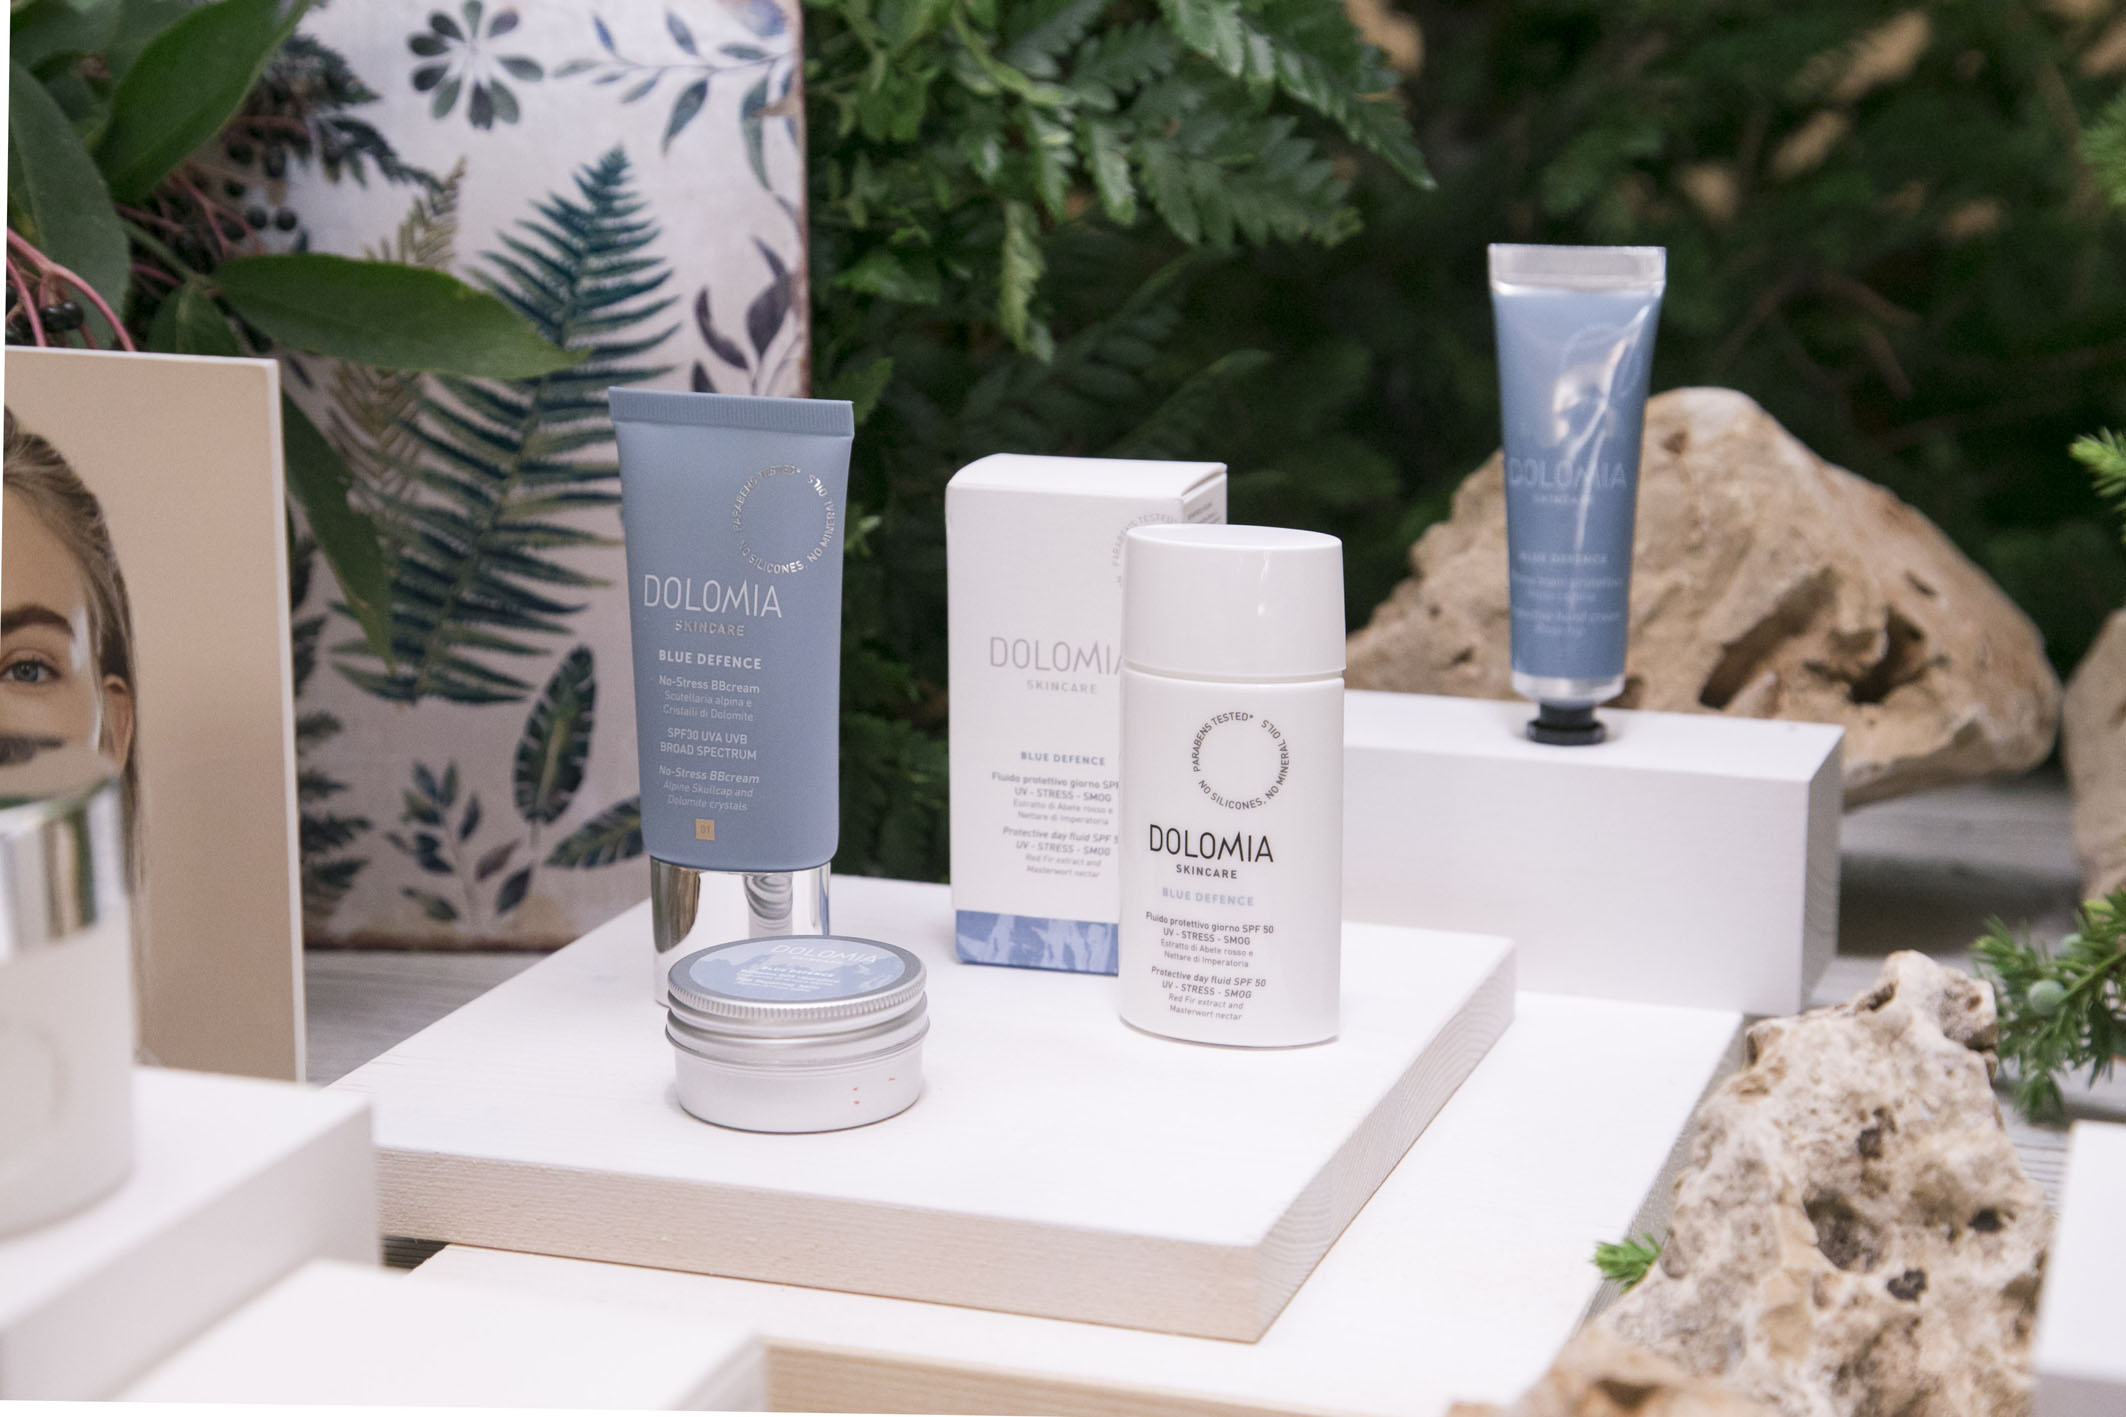 Dolomia Skincare new launch set styling project @ Fioraio Bianchi 03